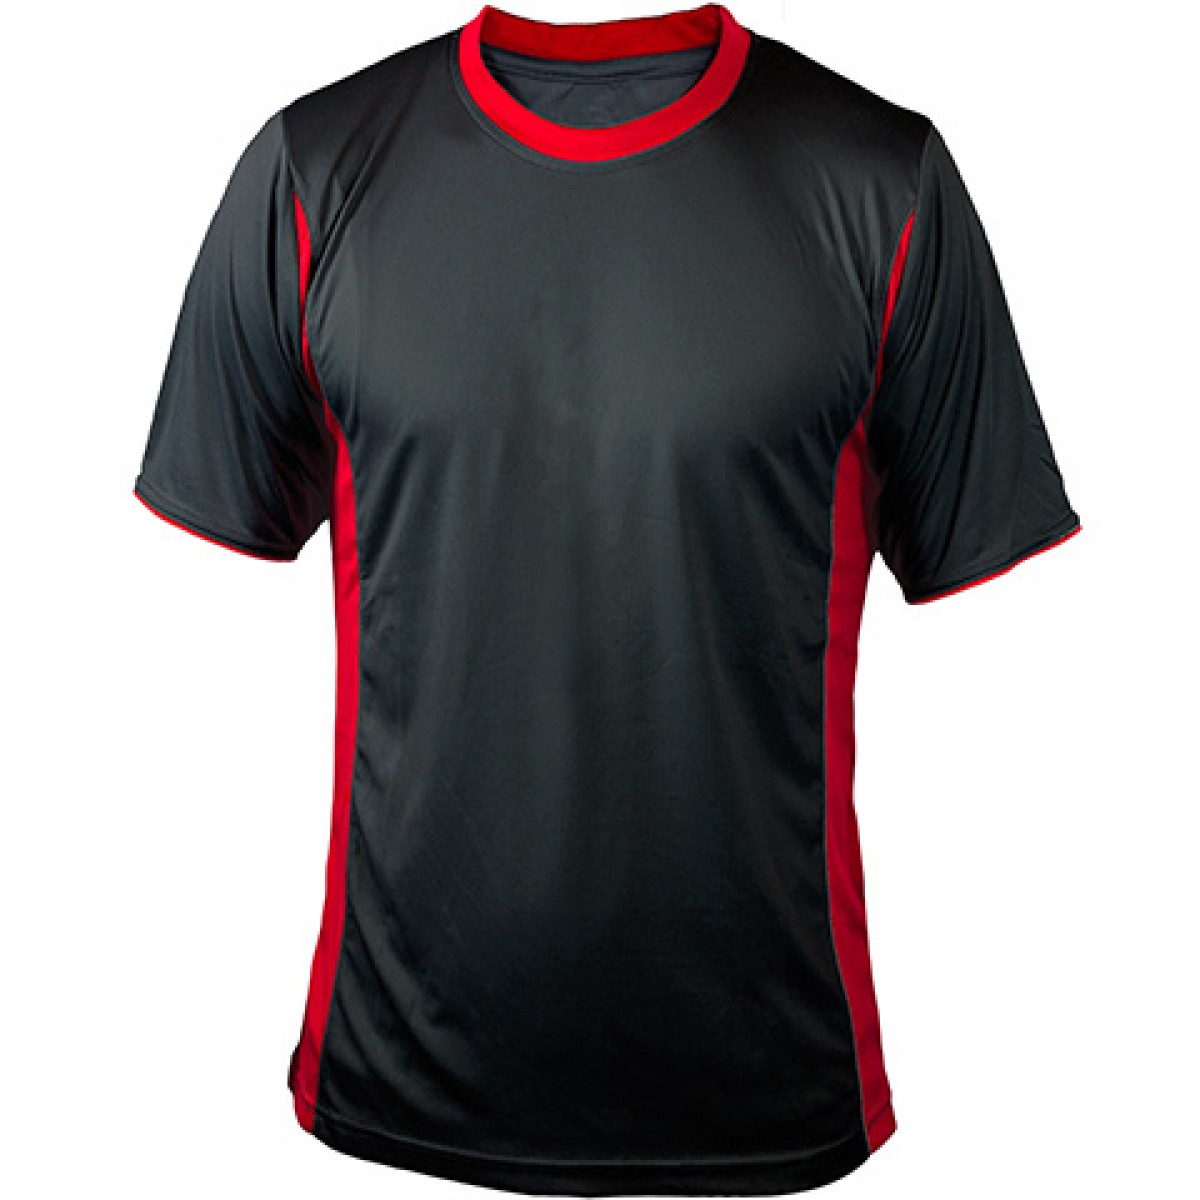 Black Short Sleeves Performance With Red Side Insert-Black-M